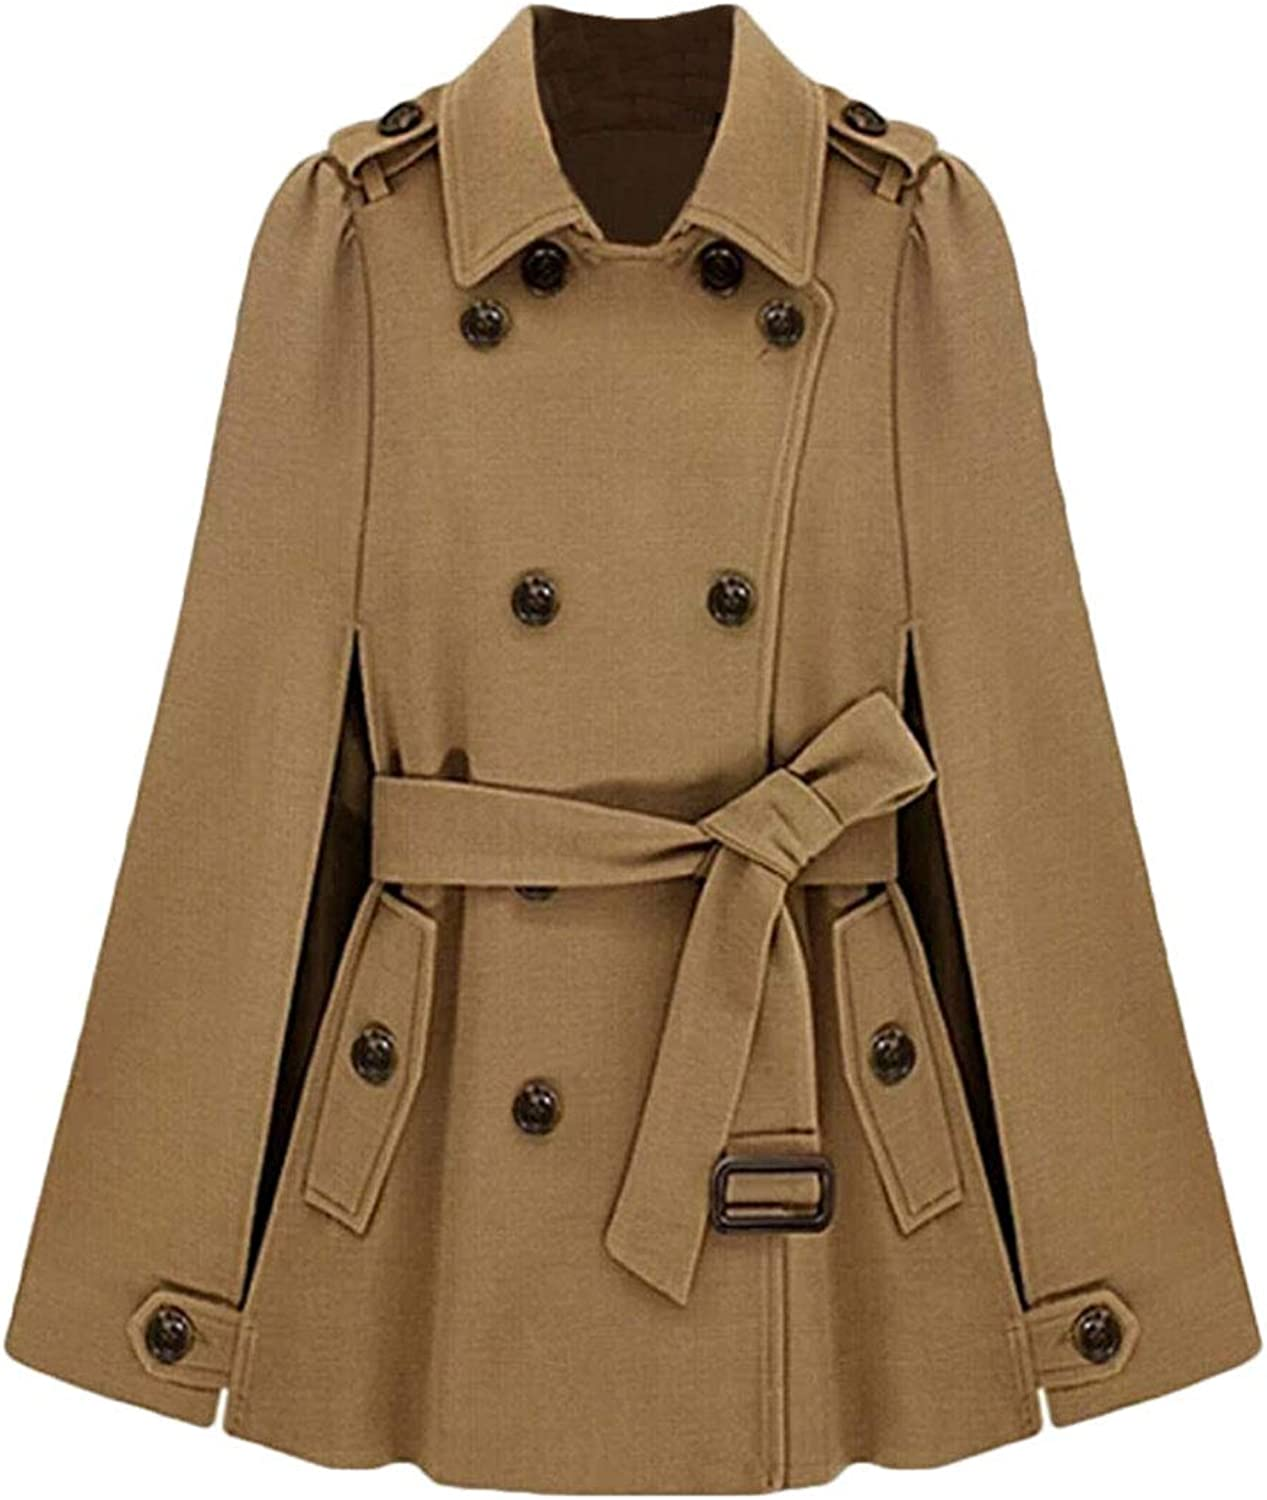 Hmarkt Womens Belted Poncho DoubleBreasted Woolen Basic Long Trench Coat